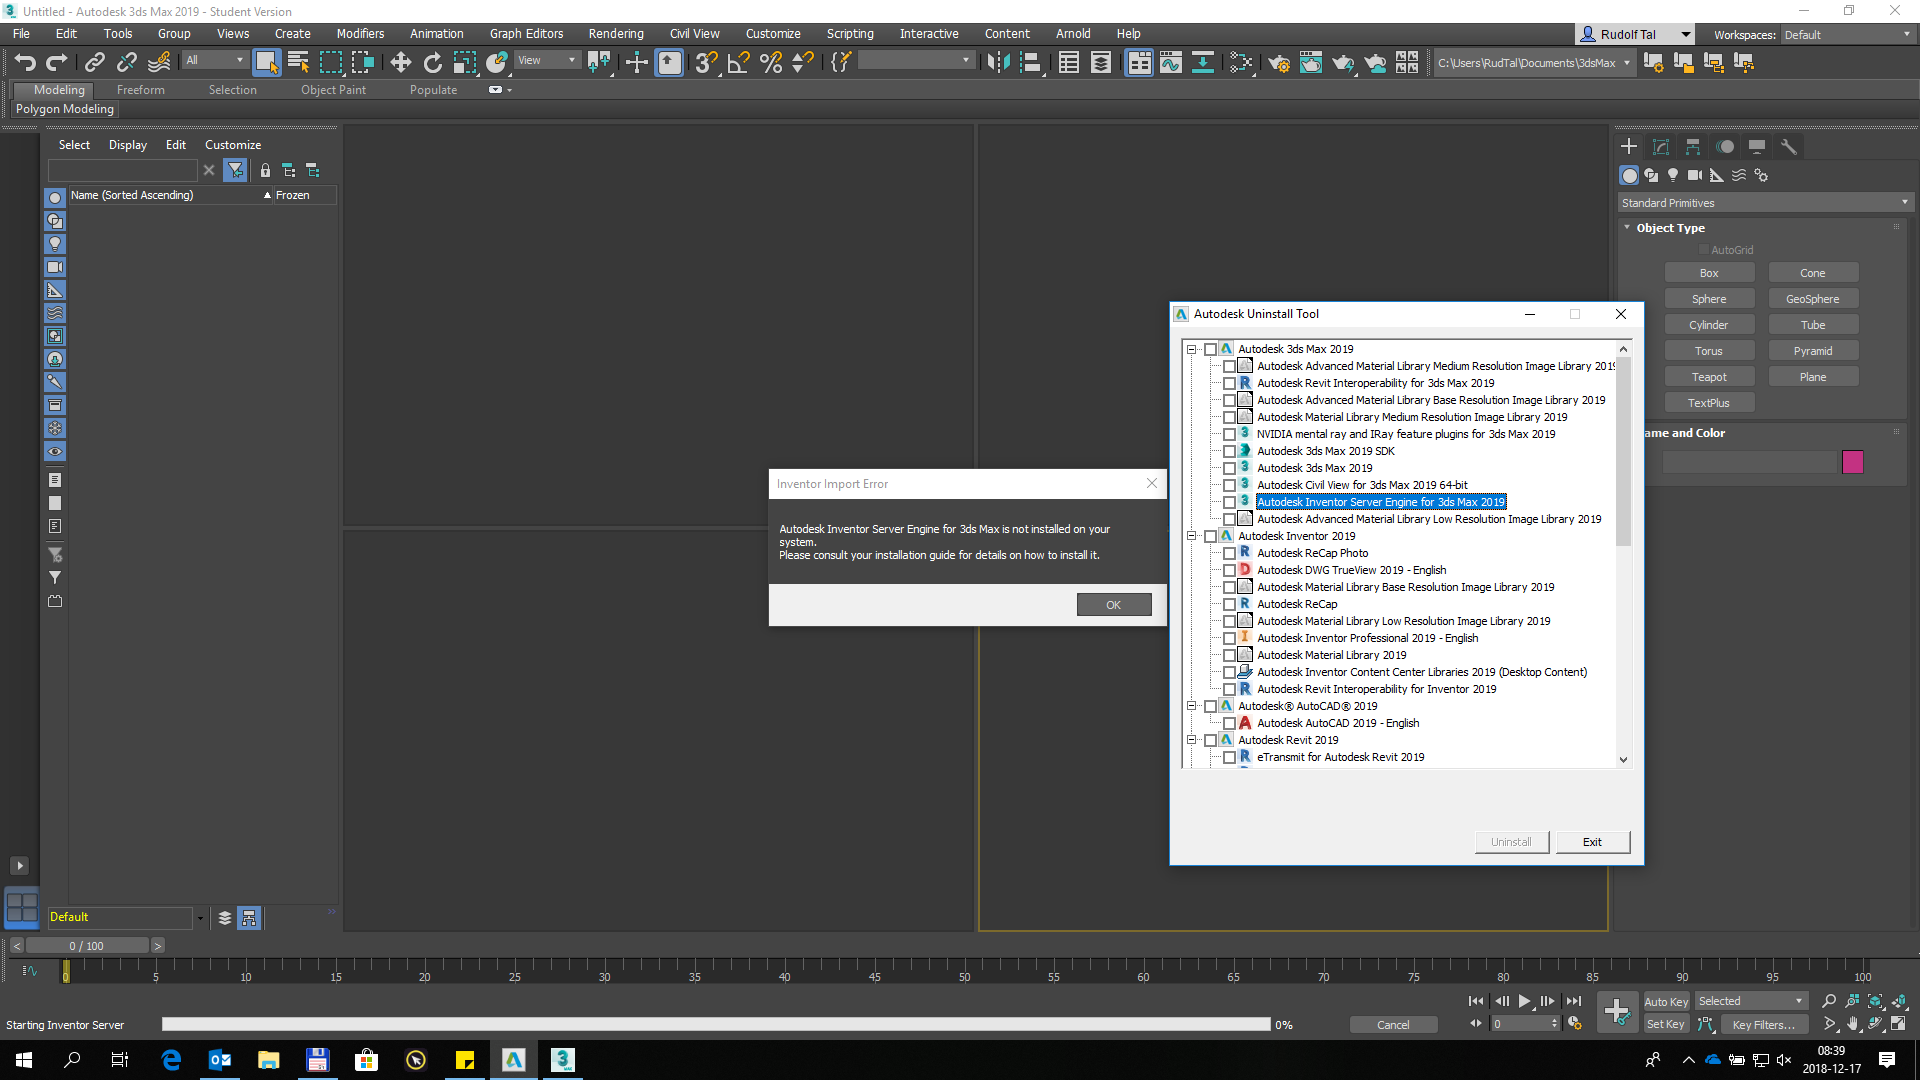 Autodesk Inventor Server Engine for 3ds max - Autodesk Community